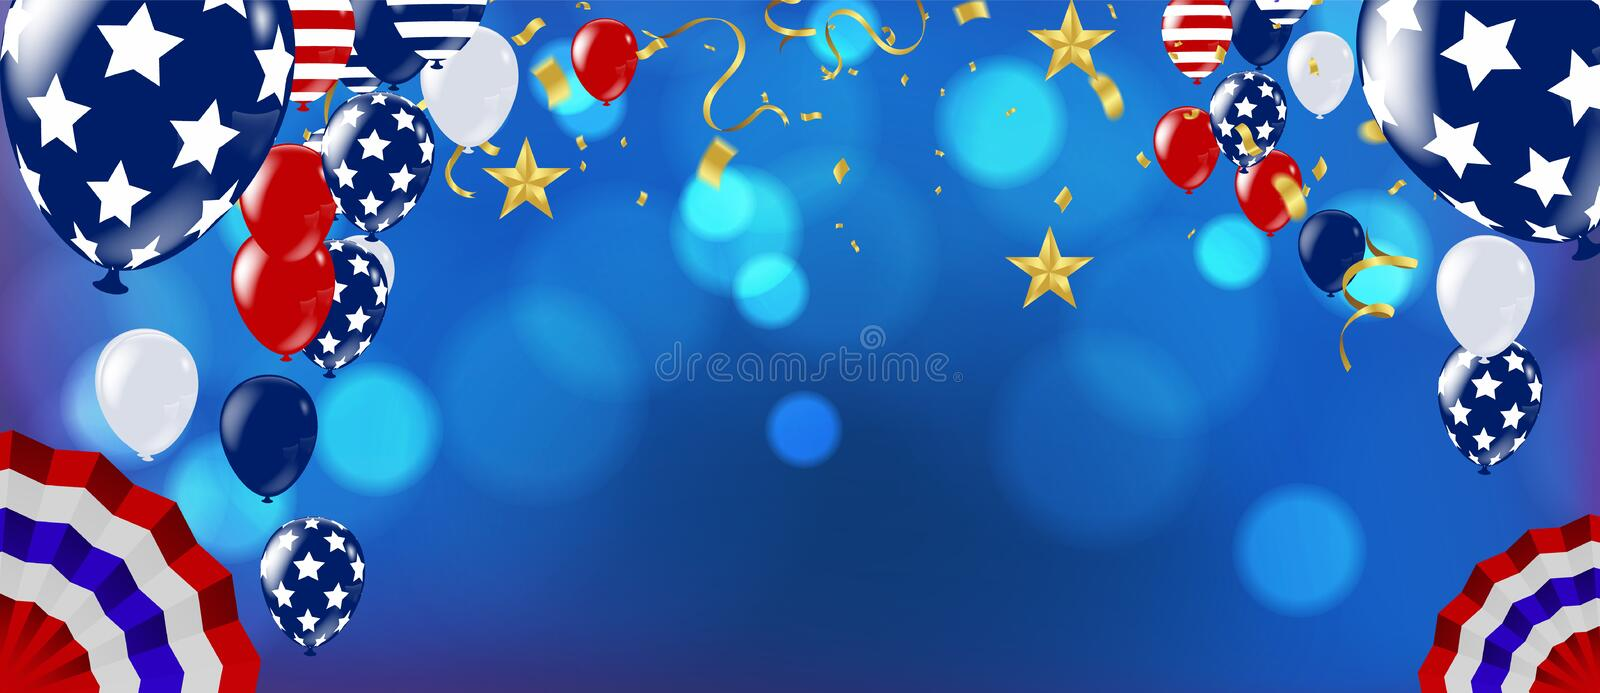 Realistic Colorful Bunch of Birthday Balloons Flying for Party and Celebrations. Happy birthday royalty free illustration